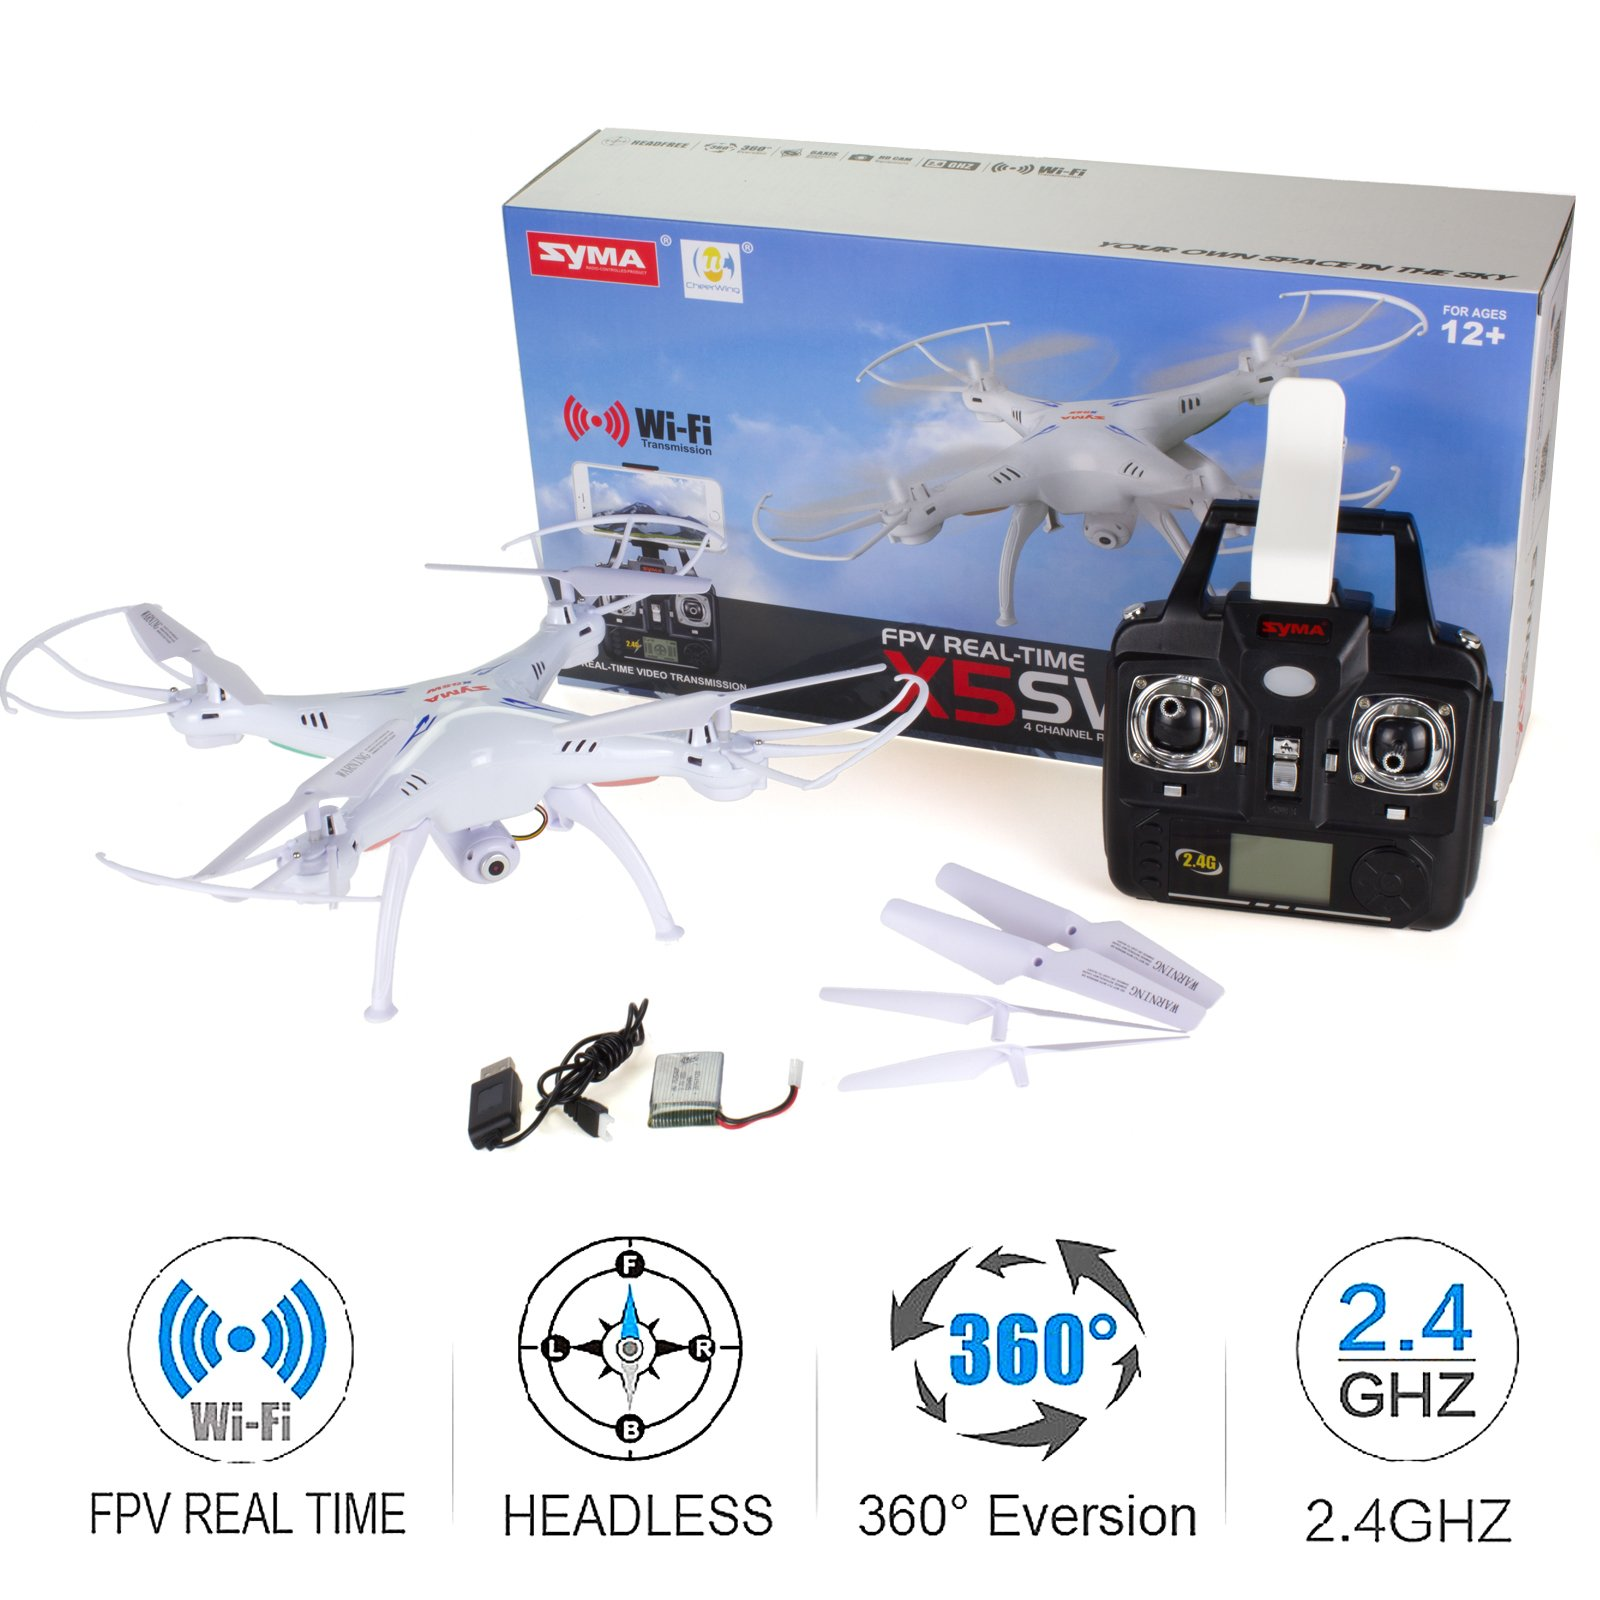 Cheerwing Syma X5SW-V3 FPV Explorers2 2.4Ghz 4CH 6-Axis Gyro RC Headless Quadcopter Drone UFO with HD Wifi Camera (White) by Cheerwing (Image #6)